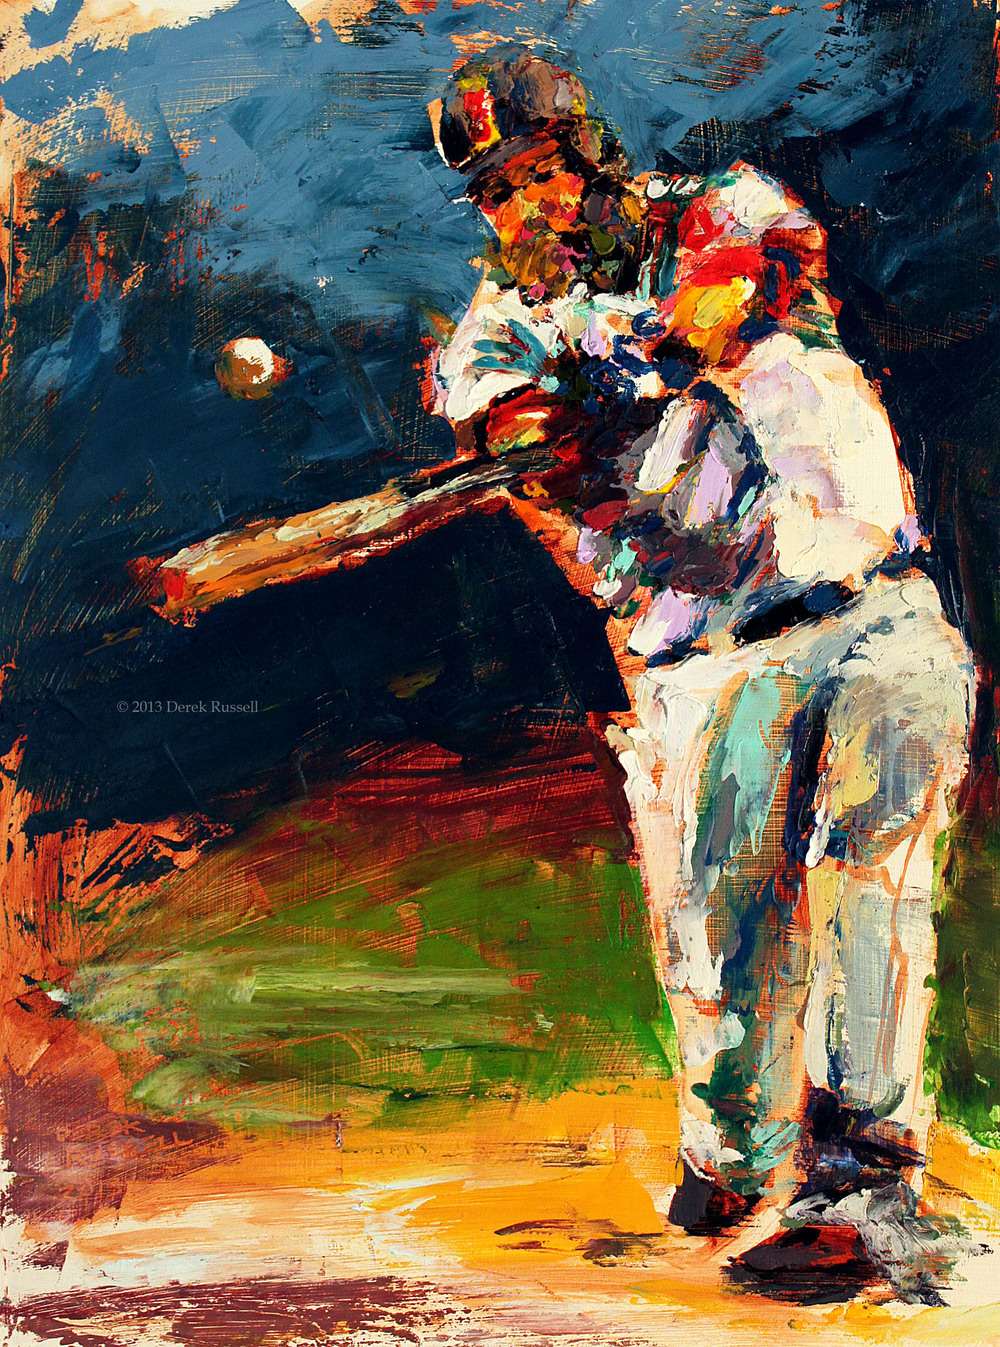 Mike Napoil Original Fine Art Oil Painting of Boston Red Sox by Artist Derek Russell